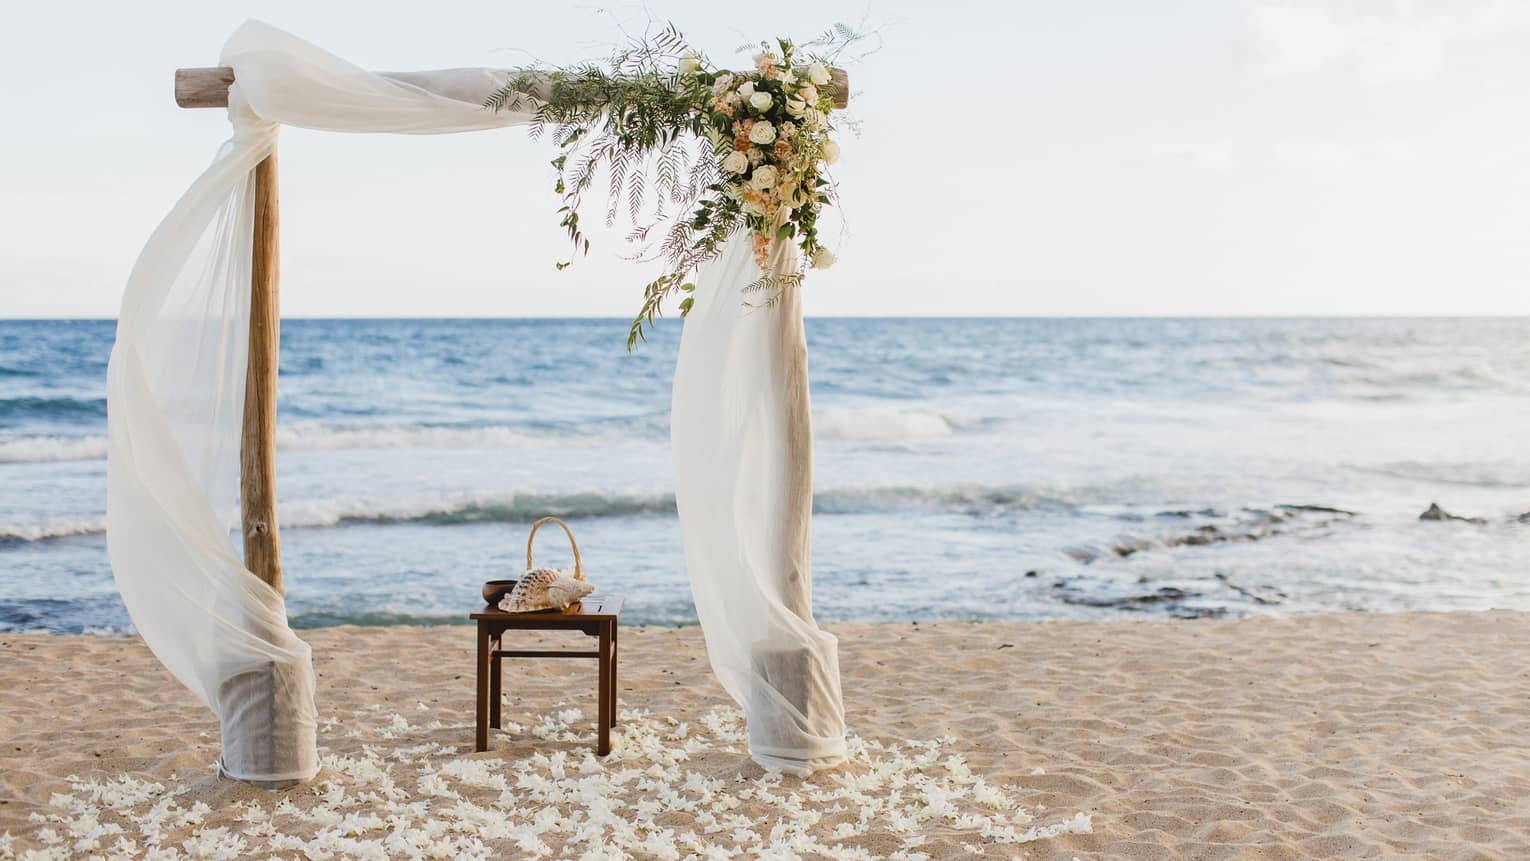 Sand beach wedding altar with flowers, white linens flowing in breeze